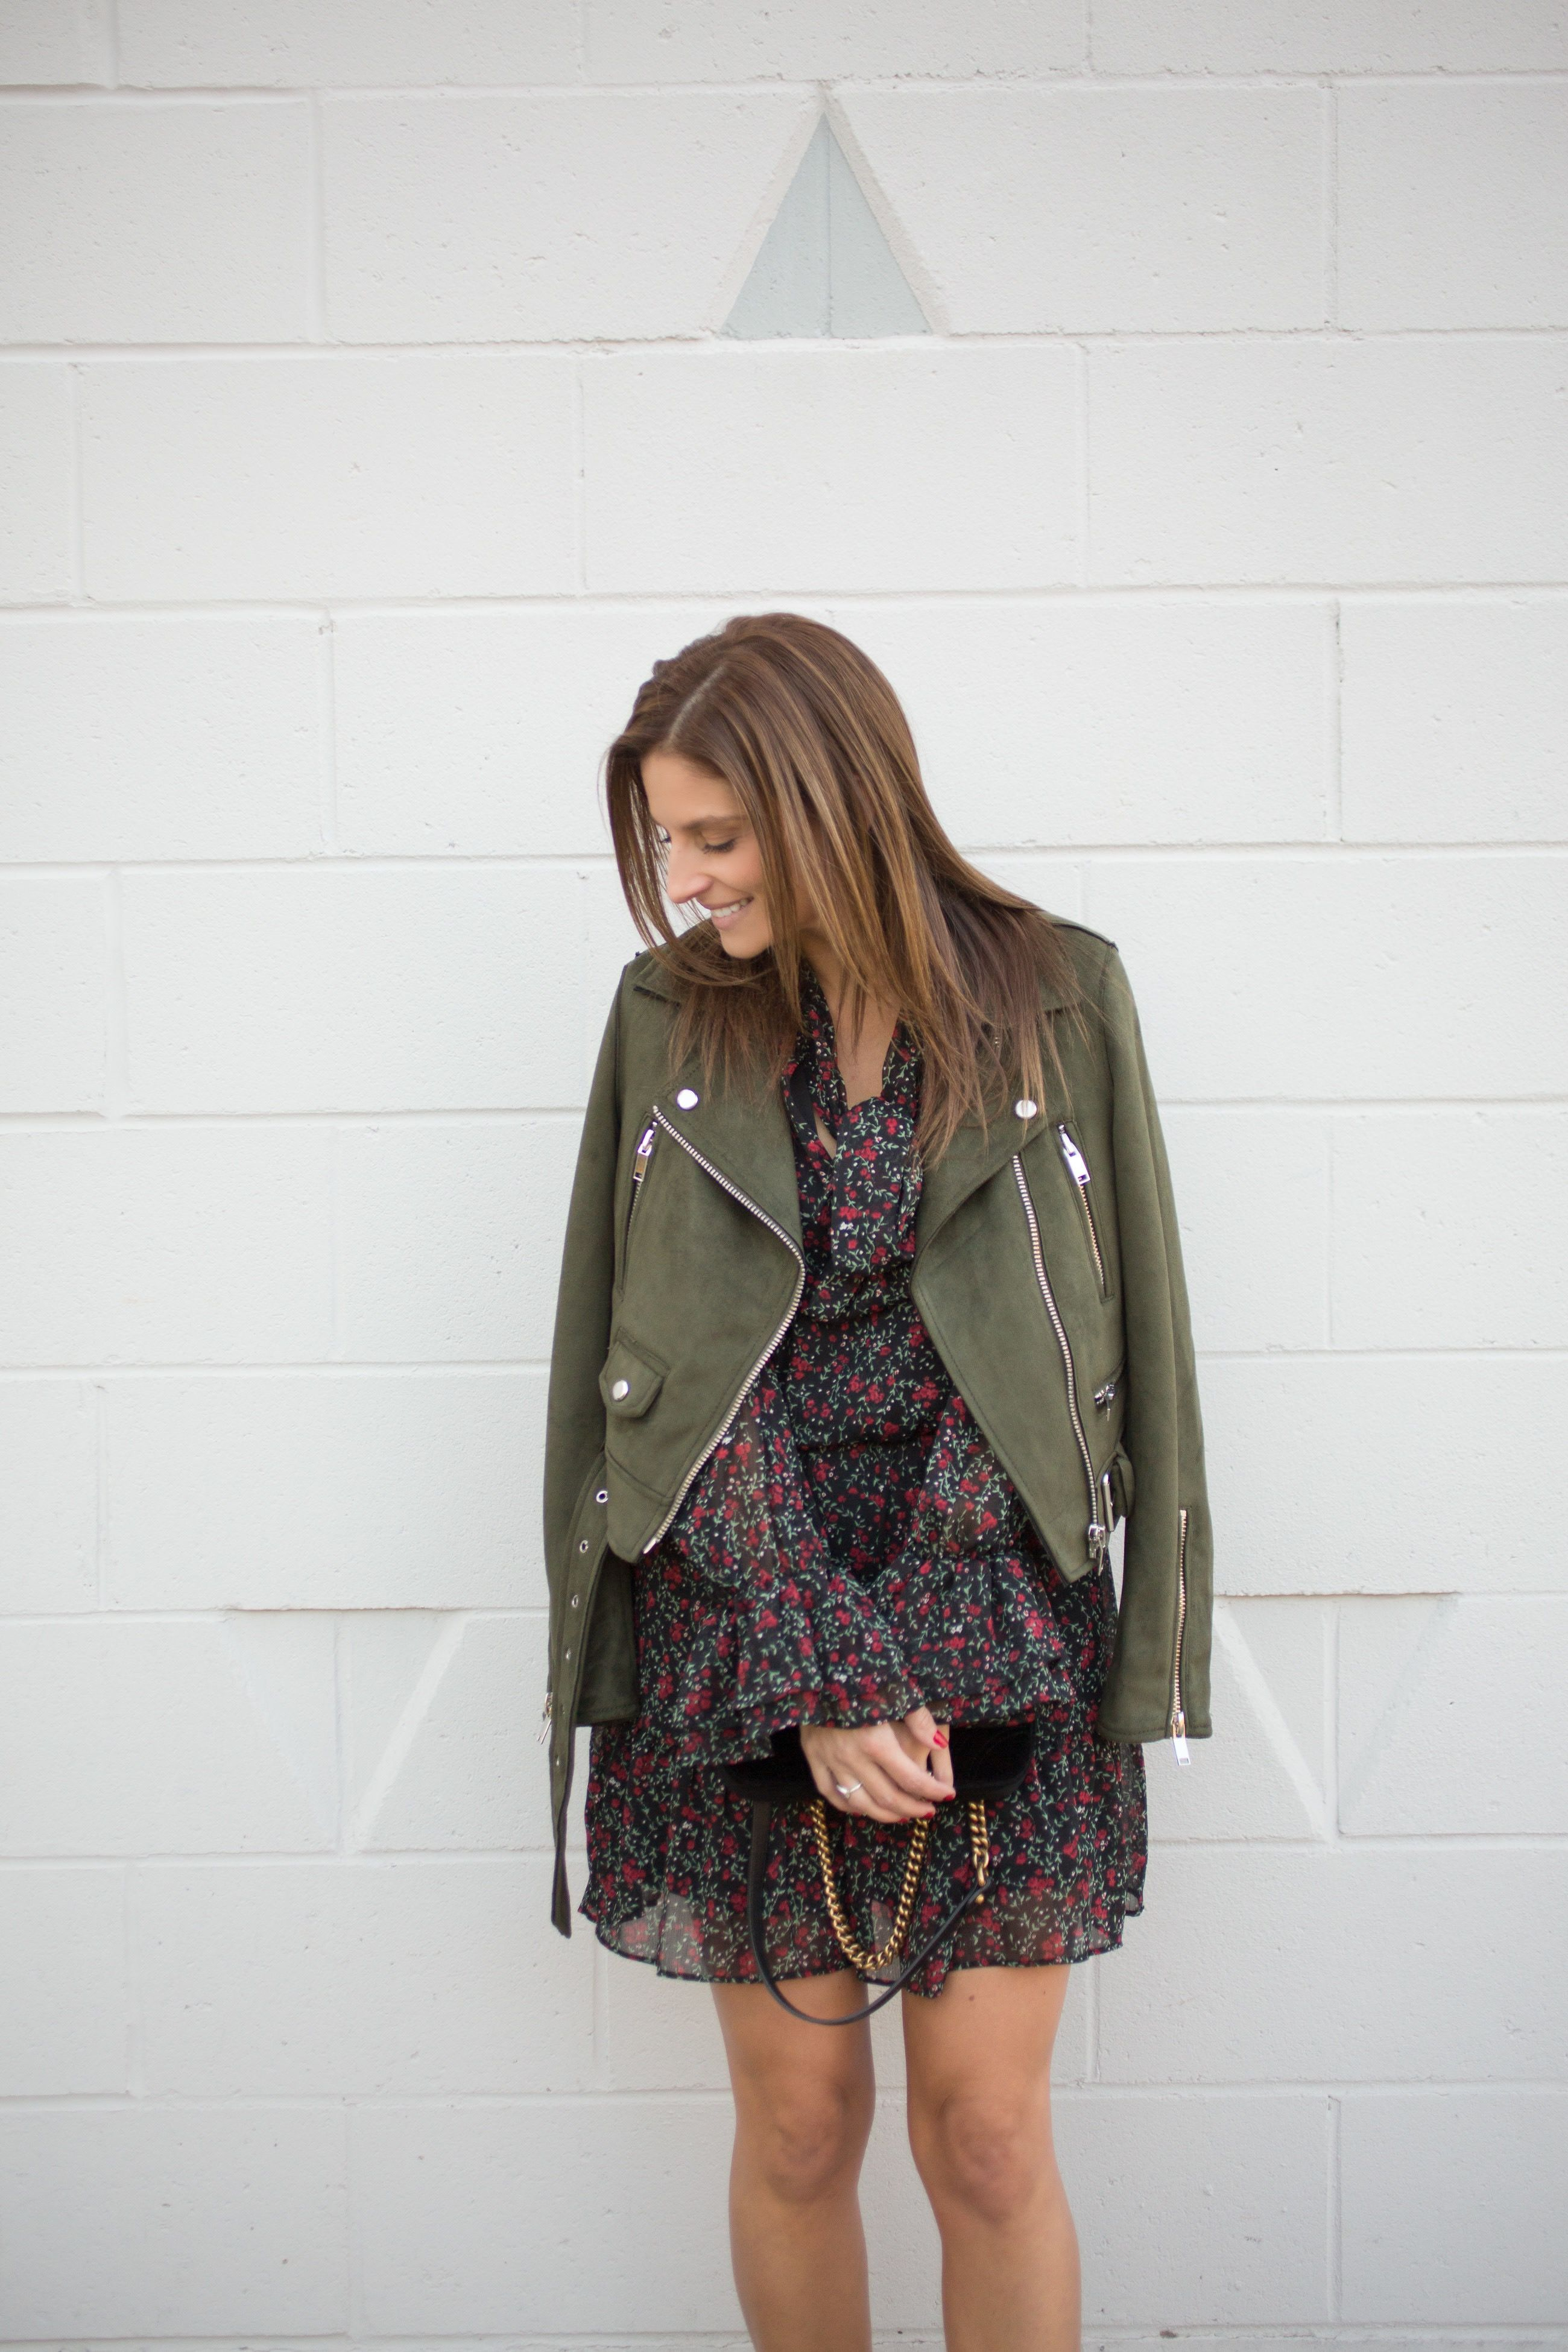 Fall outfit ideas with green suede moto jacket, floral